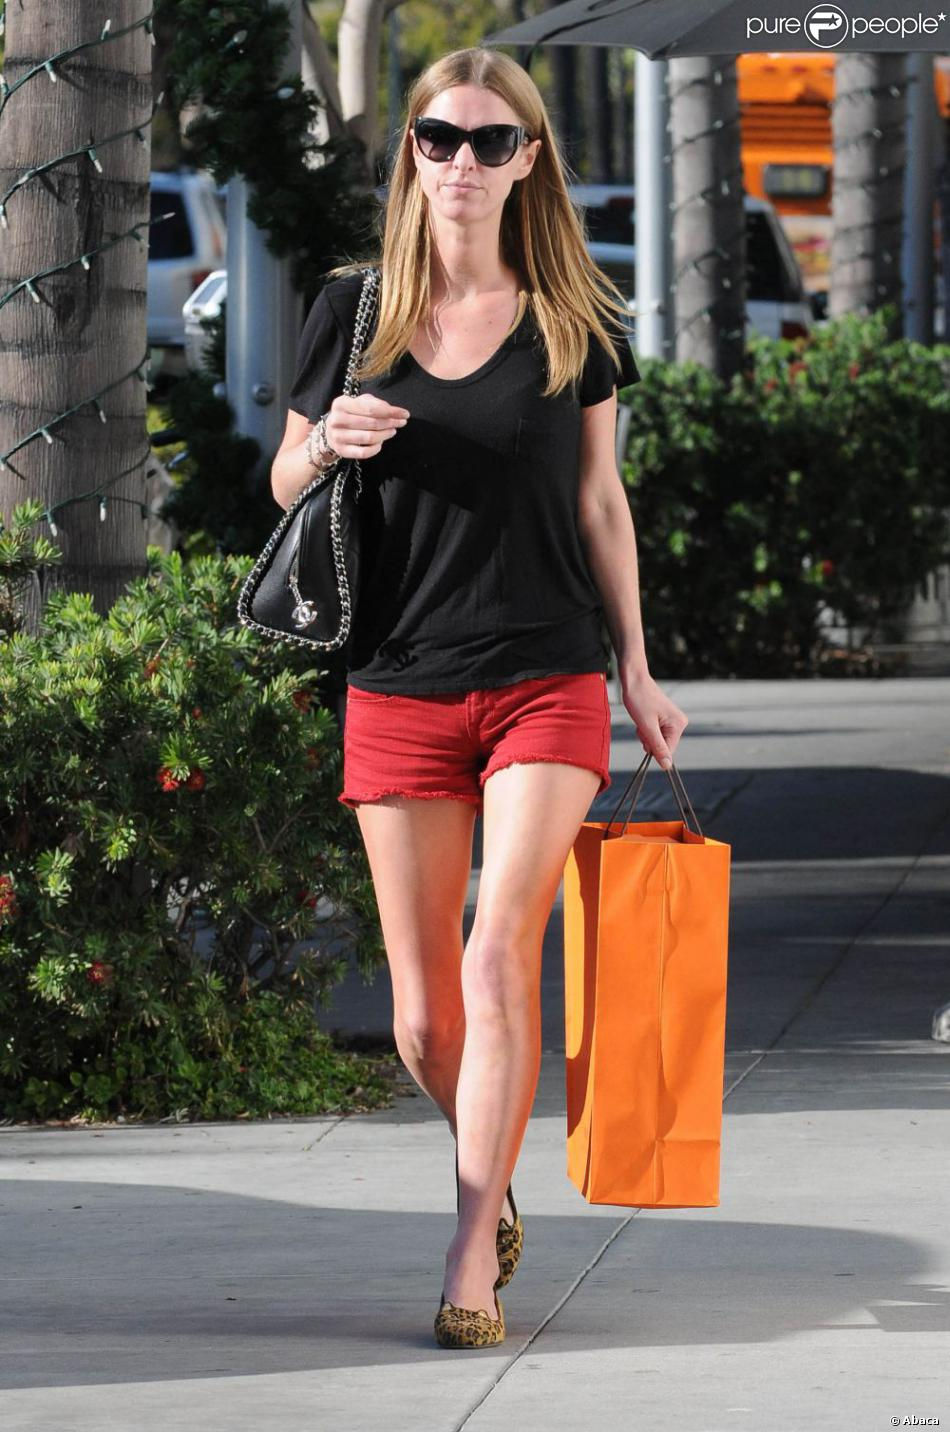 nicky hilton et sa tenue d 39 t de sortie pour une apr s midi shopping beverly hills le 3. Black Bedroom Furniture Sets. Home Design Ideas